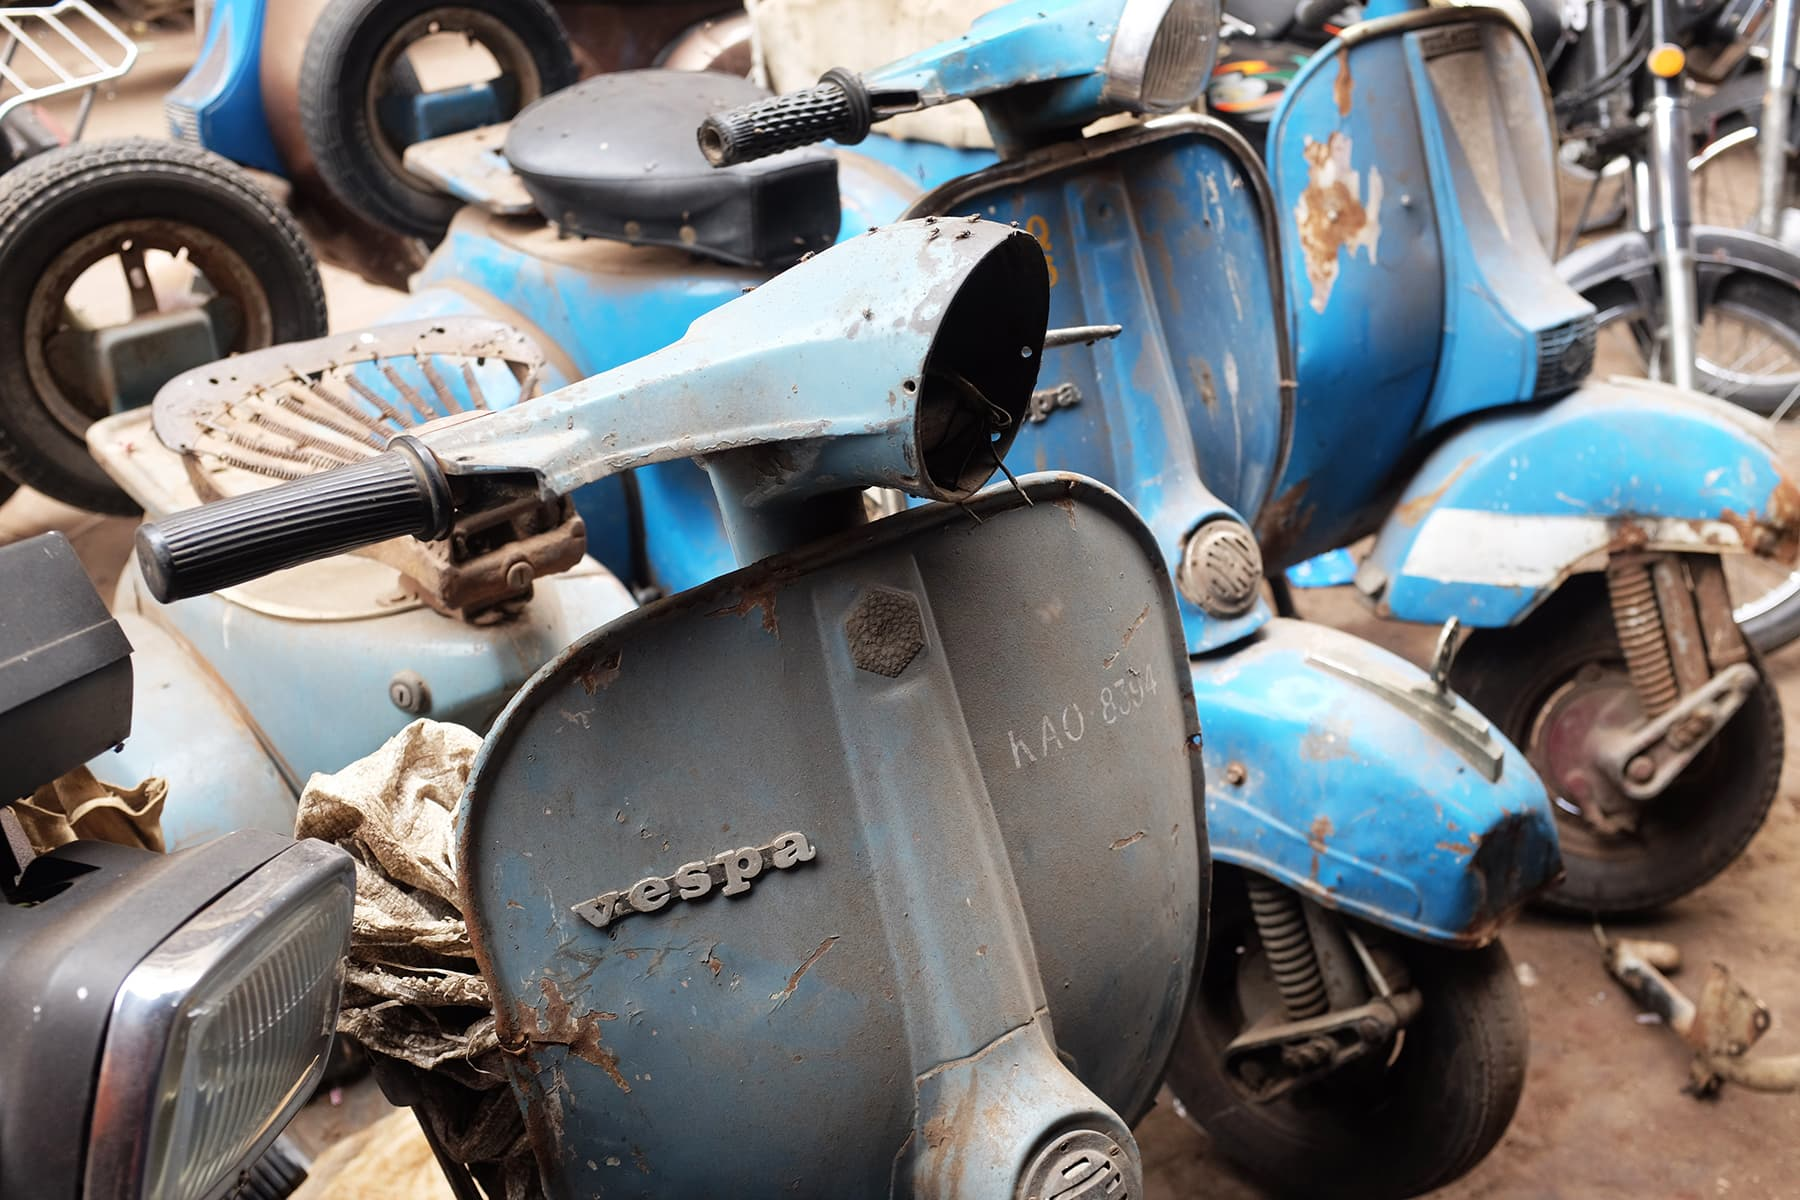 Most of the Vespas in Ranchor lines are waiting for refurbishment.